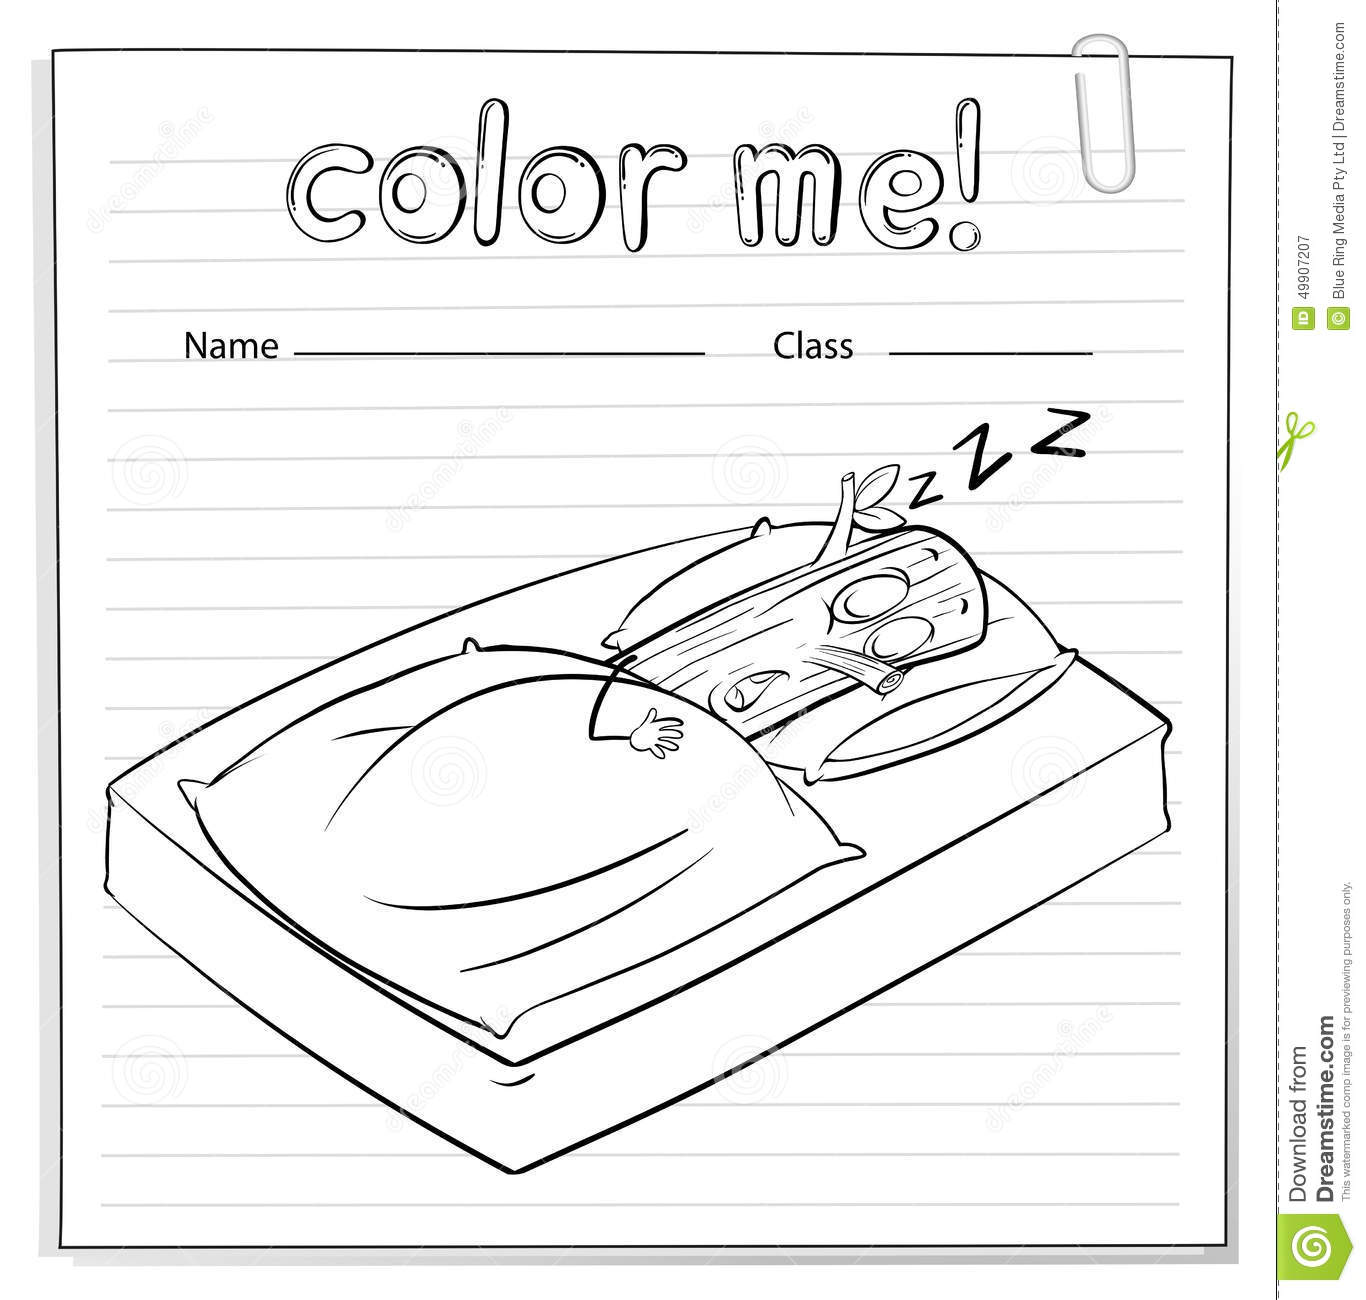 A Color Me Worksheet With A Log Sleeping